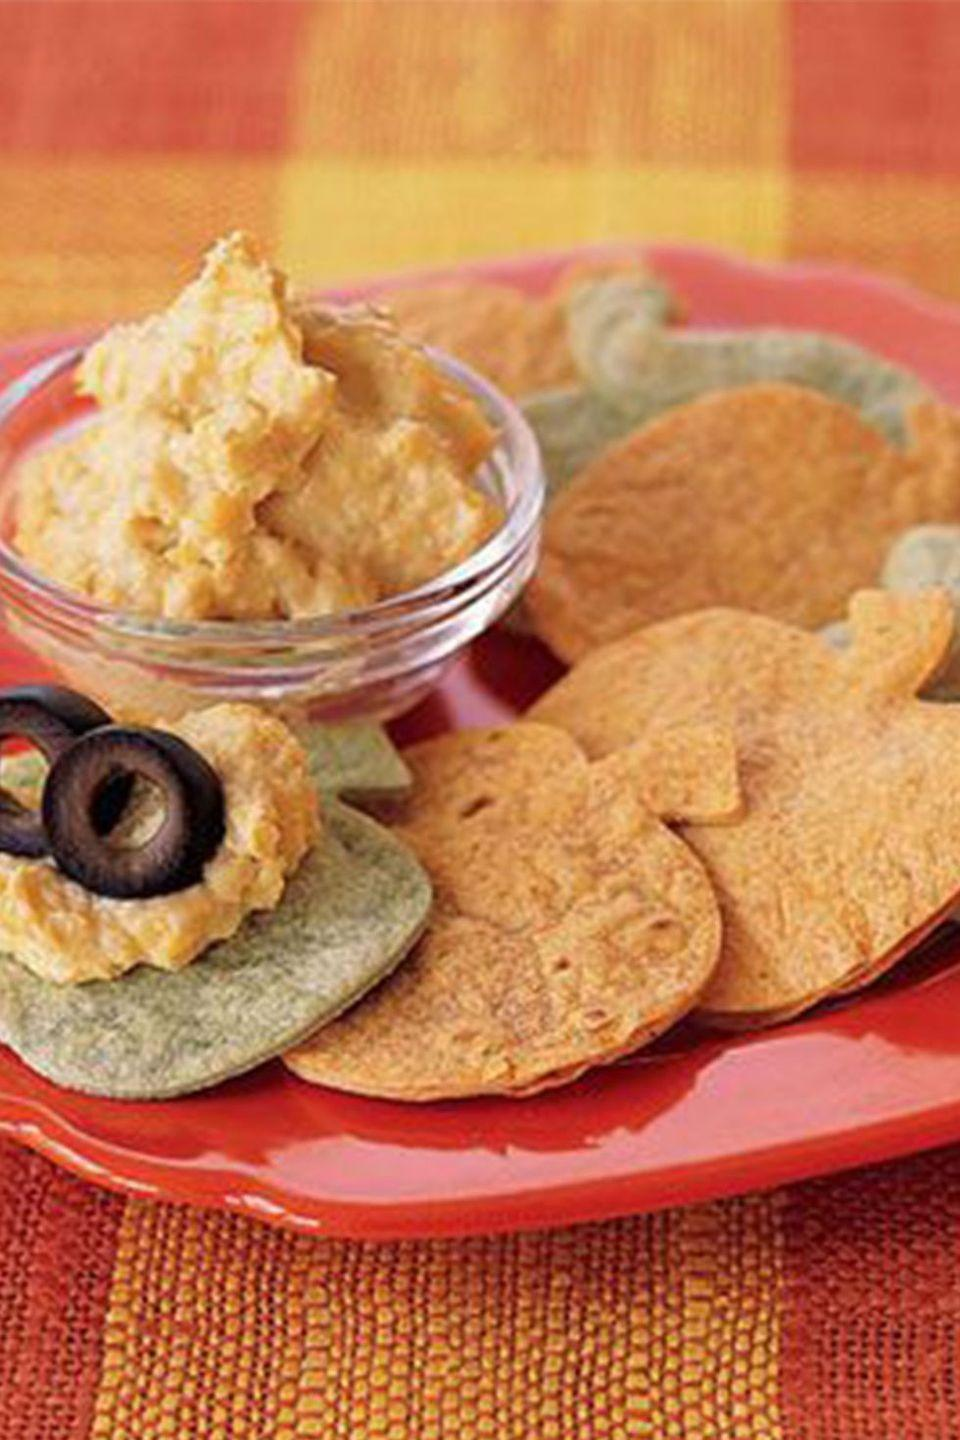 """<p>Pumpkin-shaped chips + hummus = a healthy and hearty snack for your Halloween party. </p><p><a href=""""https://www.womansday.com/food-recipes/food-drinks/recipes/a37174/pumpkin-tortilla-chips-recipe-ghk1005/"""" rel=""""nofollow noopener"""" target=""""_blank"""" data-ylk=""""slk:Get the &quot;Pumpkin&quot; Tortilla Chips recipe."""" class=""""link rapid-noclick-resp""""><em>Get the """"Pumpkin"""" Tortilla Chips recipe.</em></a></p>"""